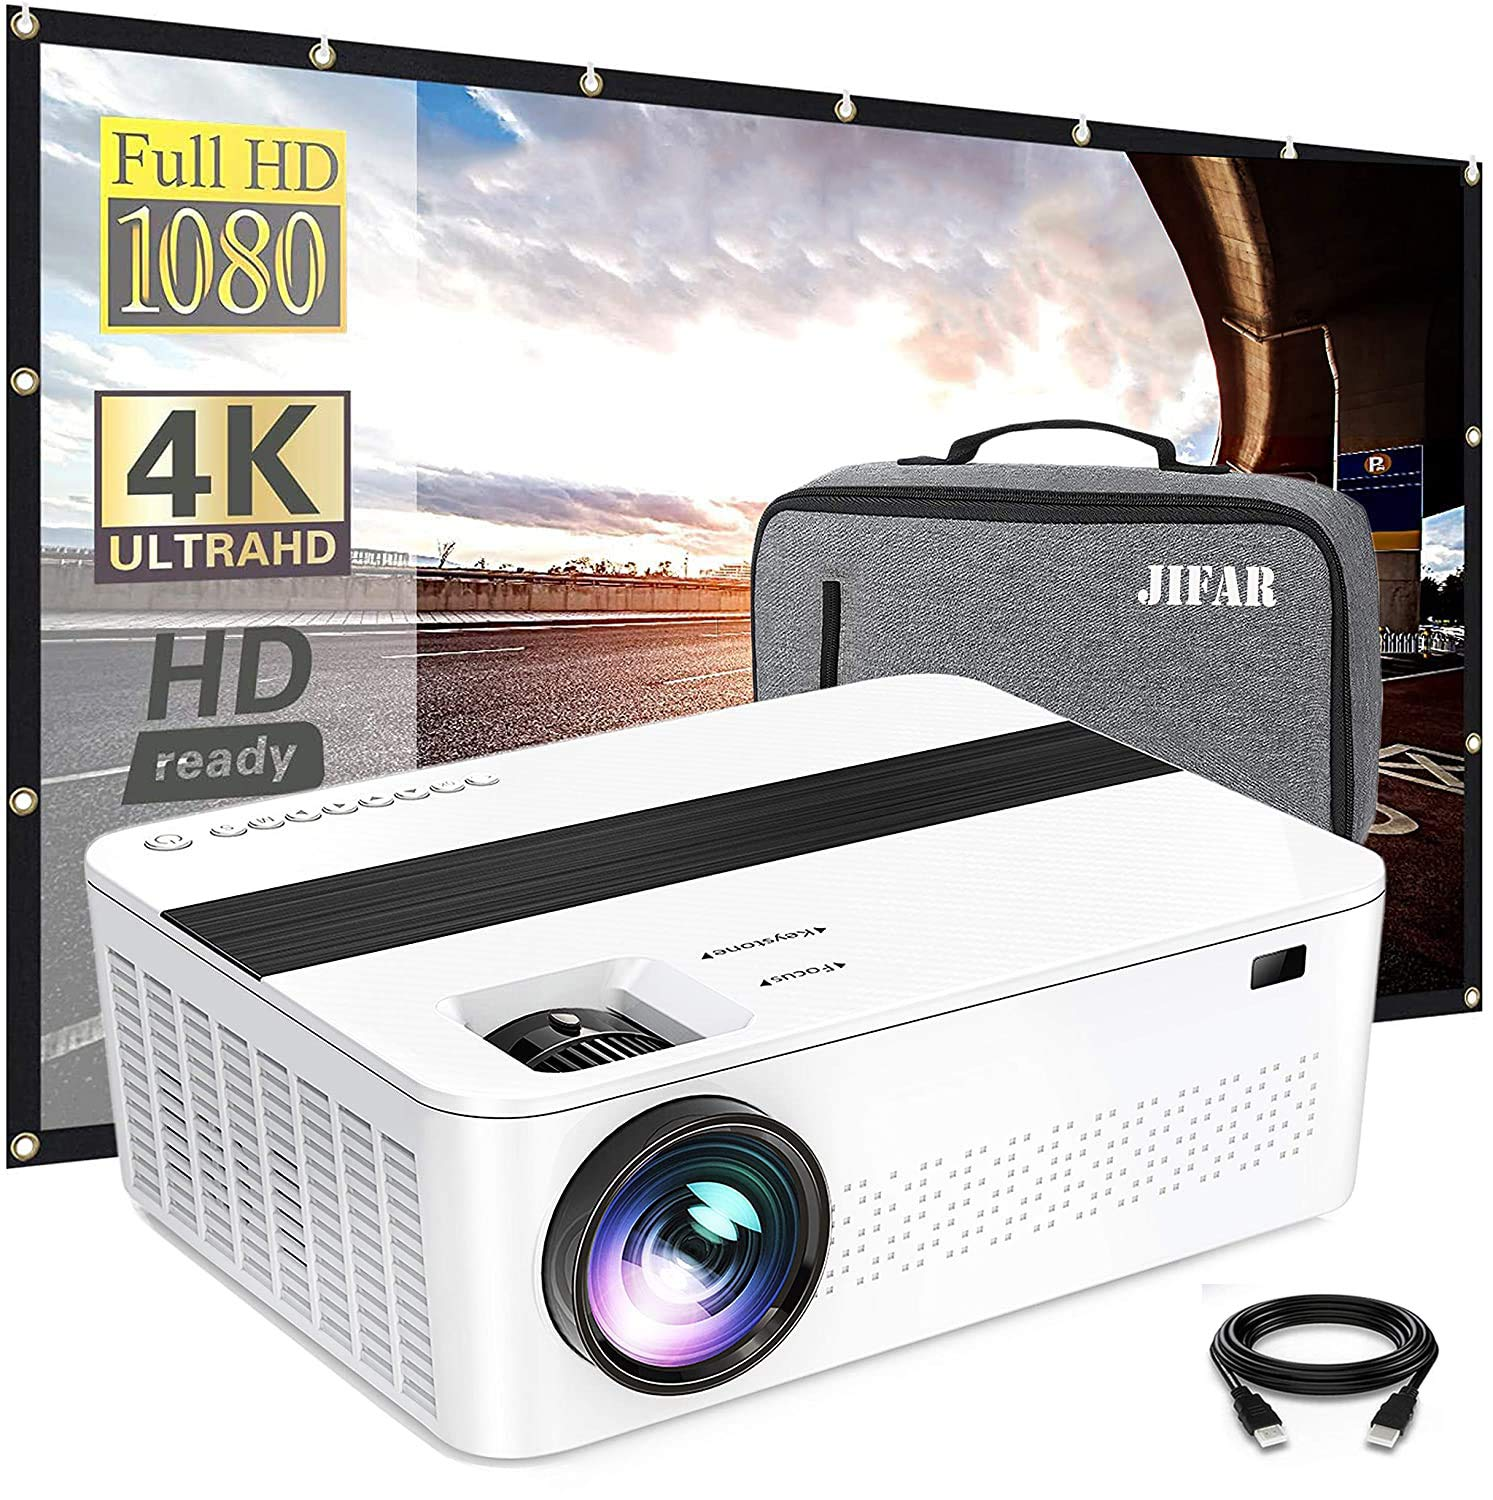 """Bluetooth Native 1080p Projector with a Bag,9000 Lux 4k Projector for Outdoor Movies with 450""""Display,Support Dolby & Zoom,Compatible with TV Stick,HDMI,VGA.USB,Smartphone,PC"""